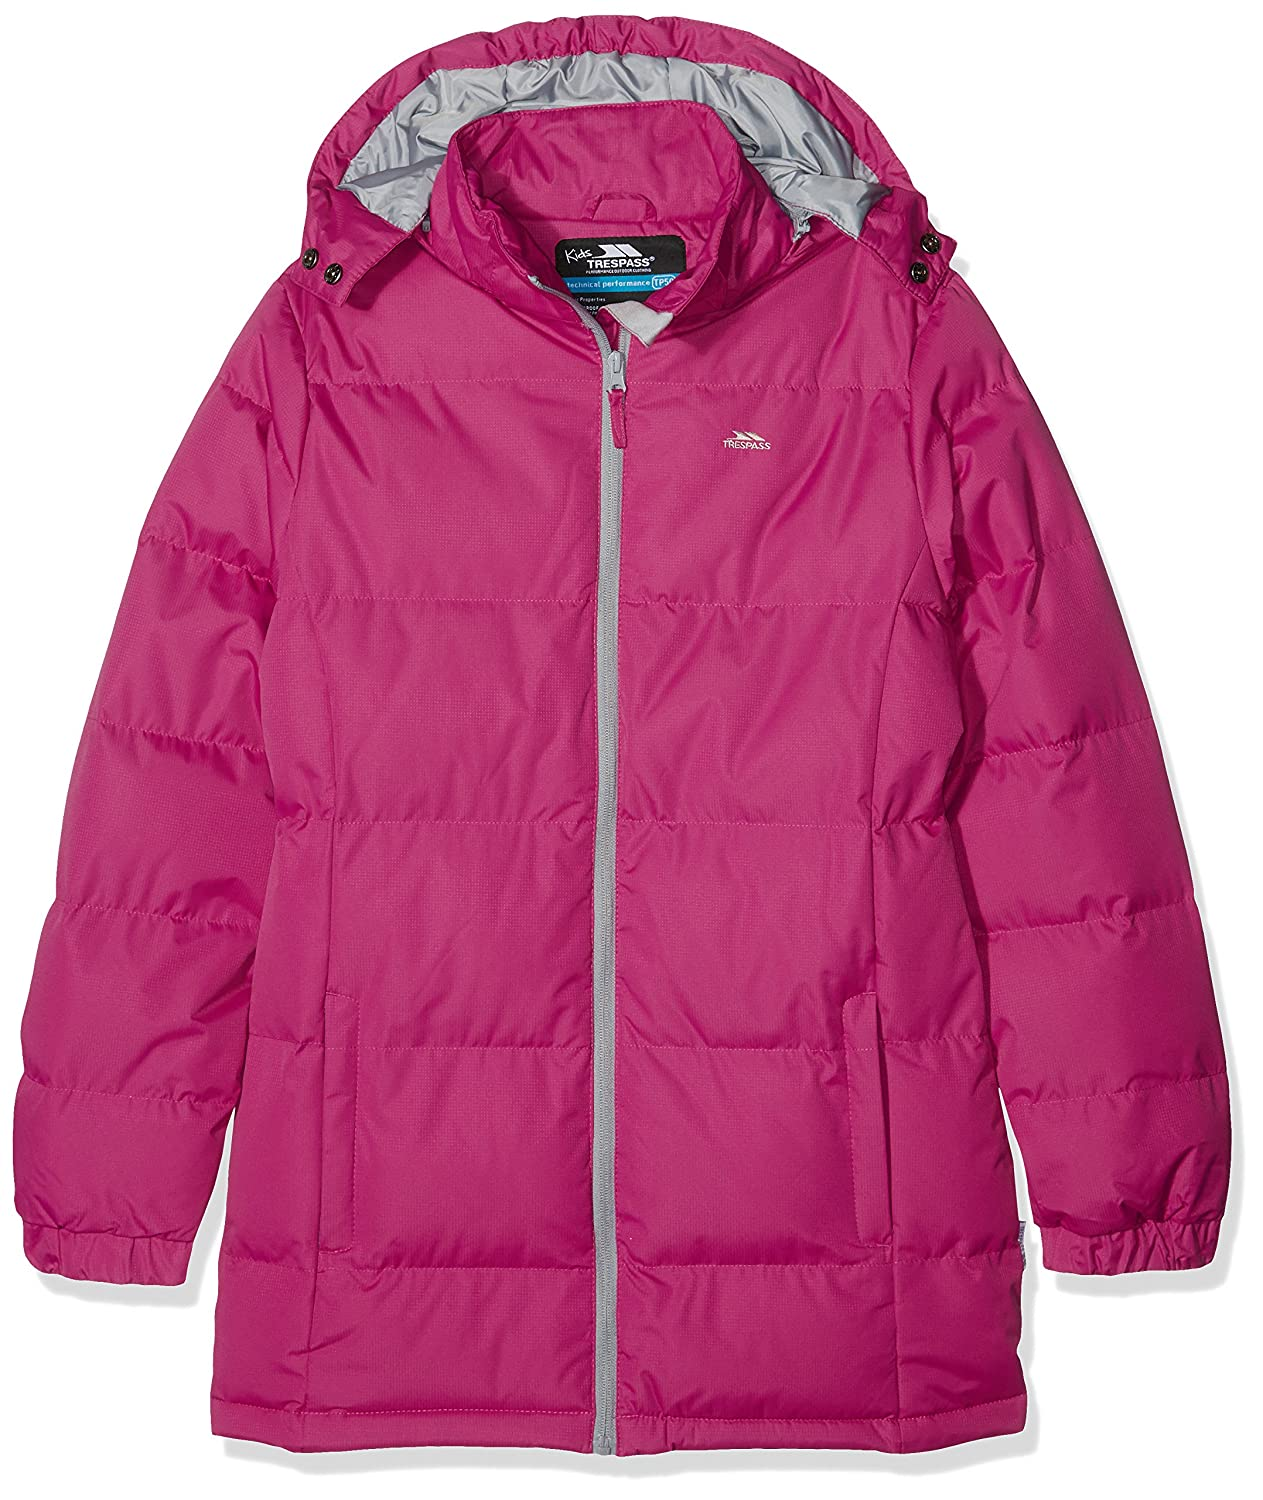 Trespass Tiffy Girl's Casual Jacket: Amazon.co.uk: Sports & Outdoors